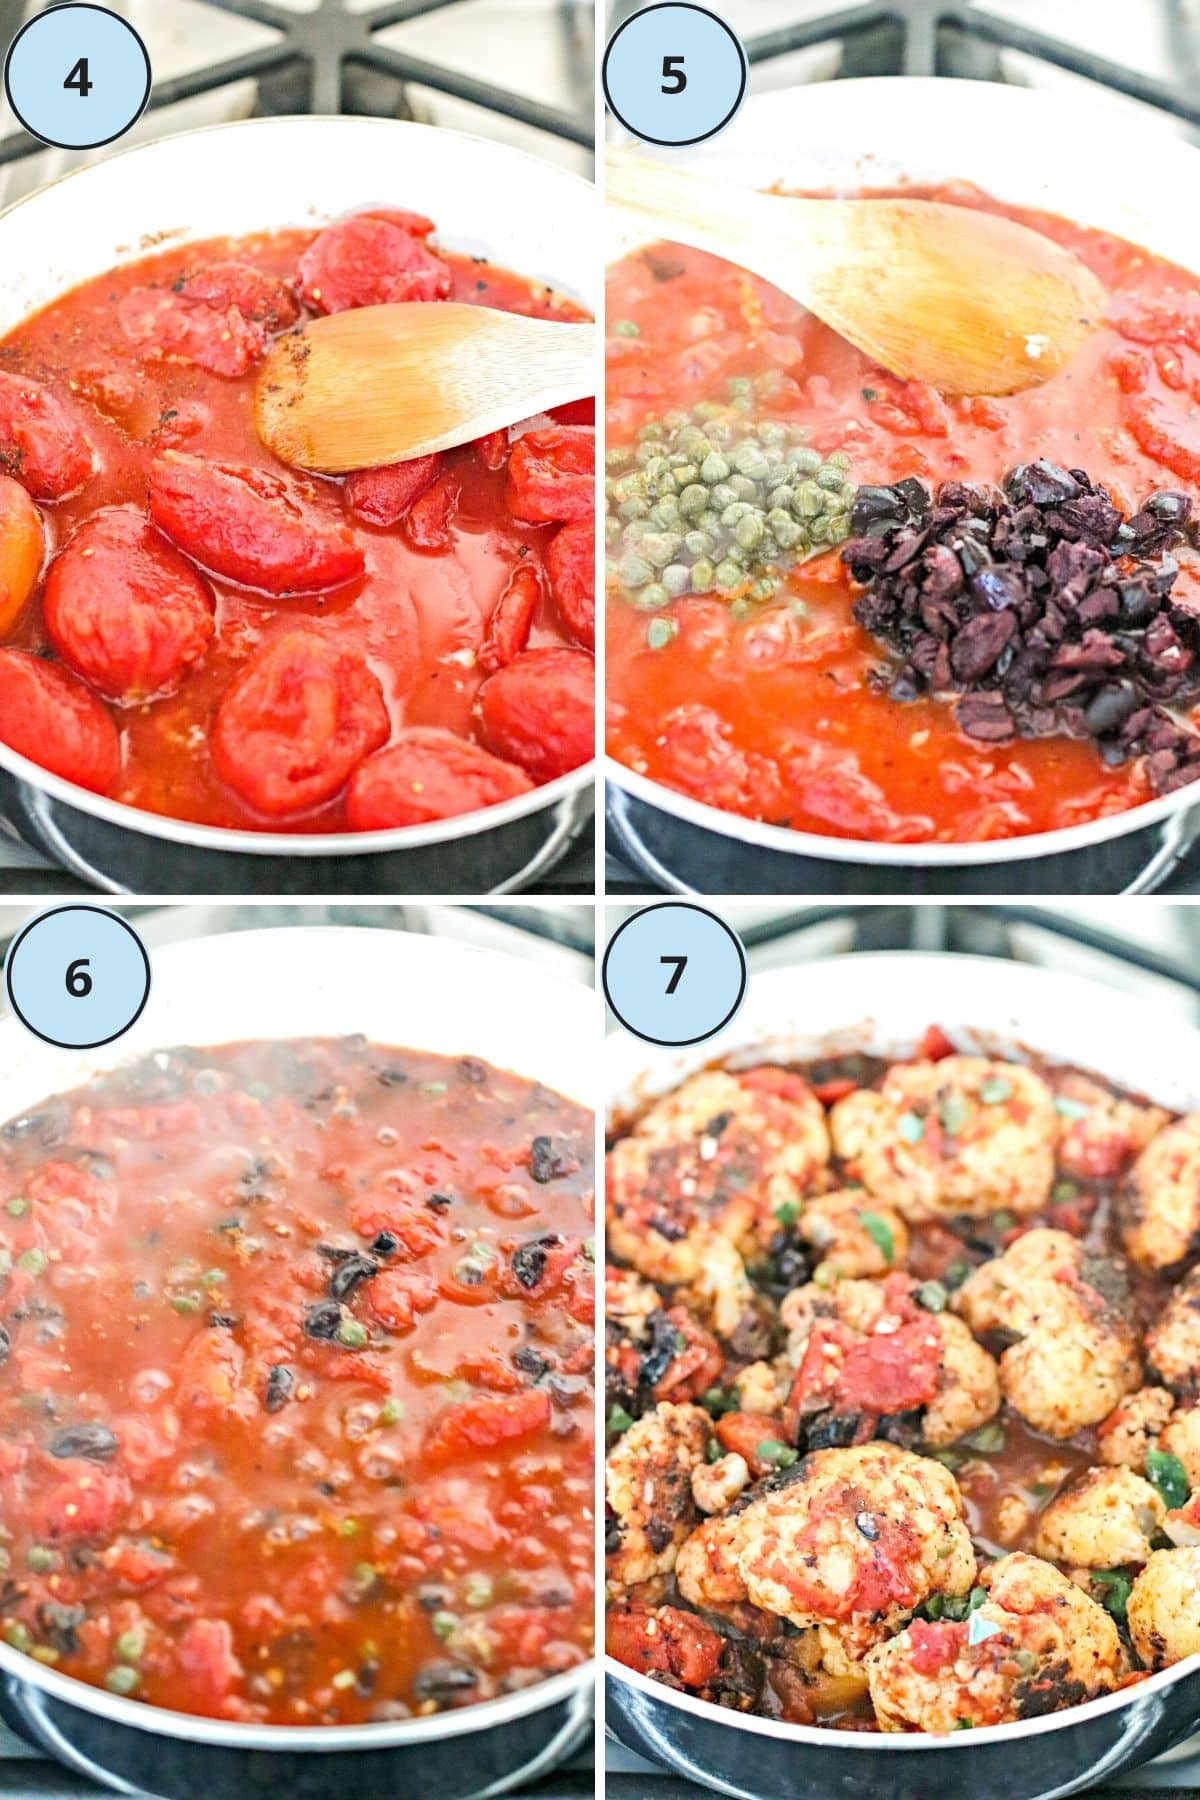 Collage of 4 images showing how to make the vegan Puttanesca sauce and then how to finish the recipe